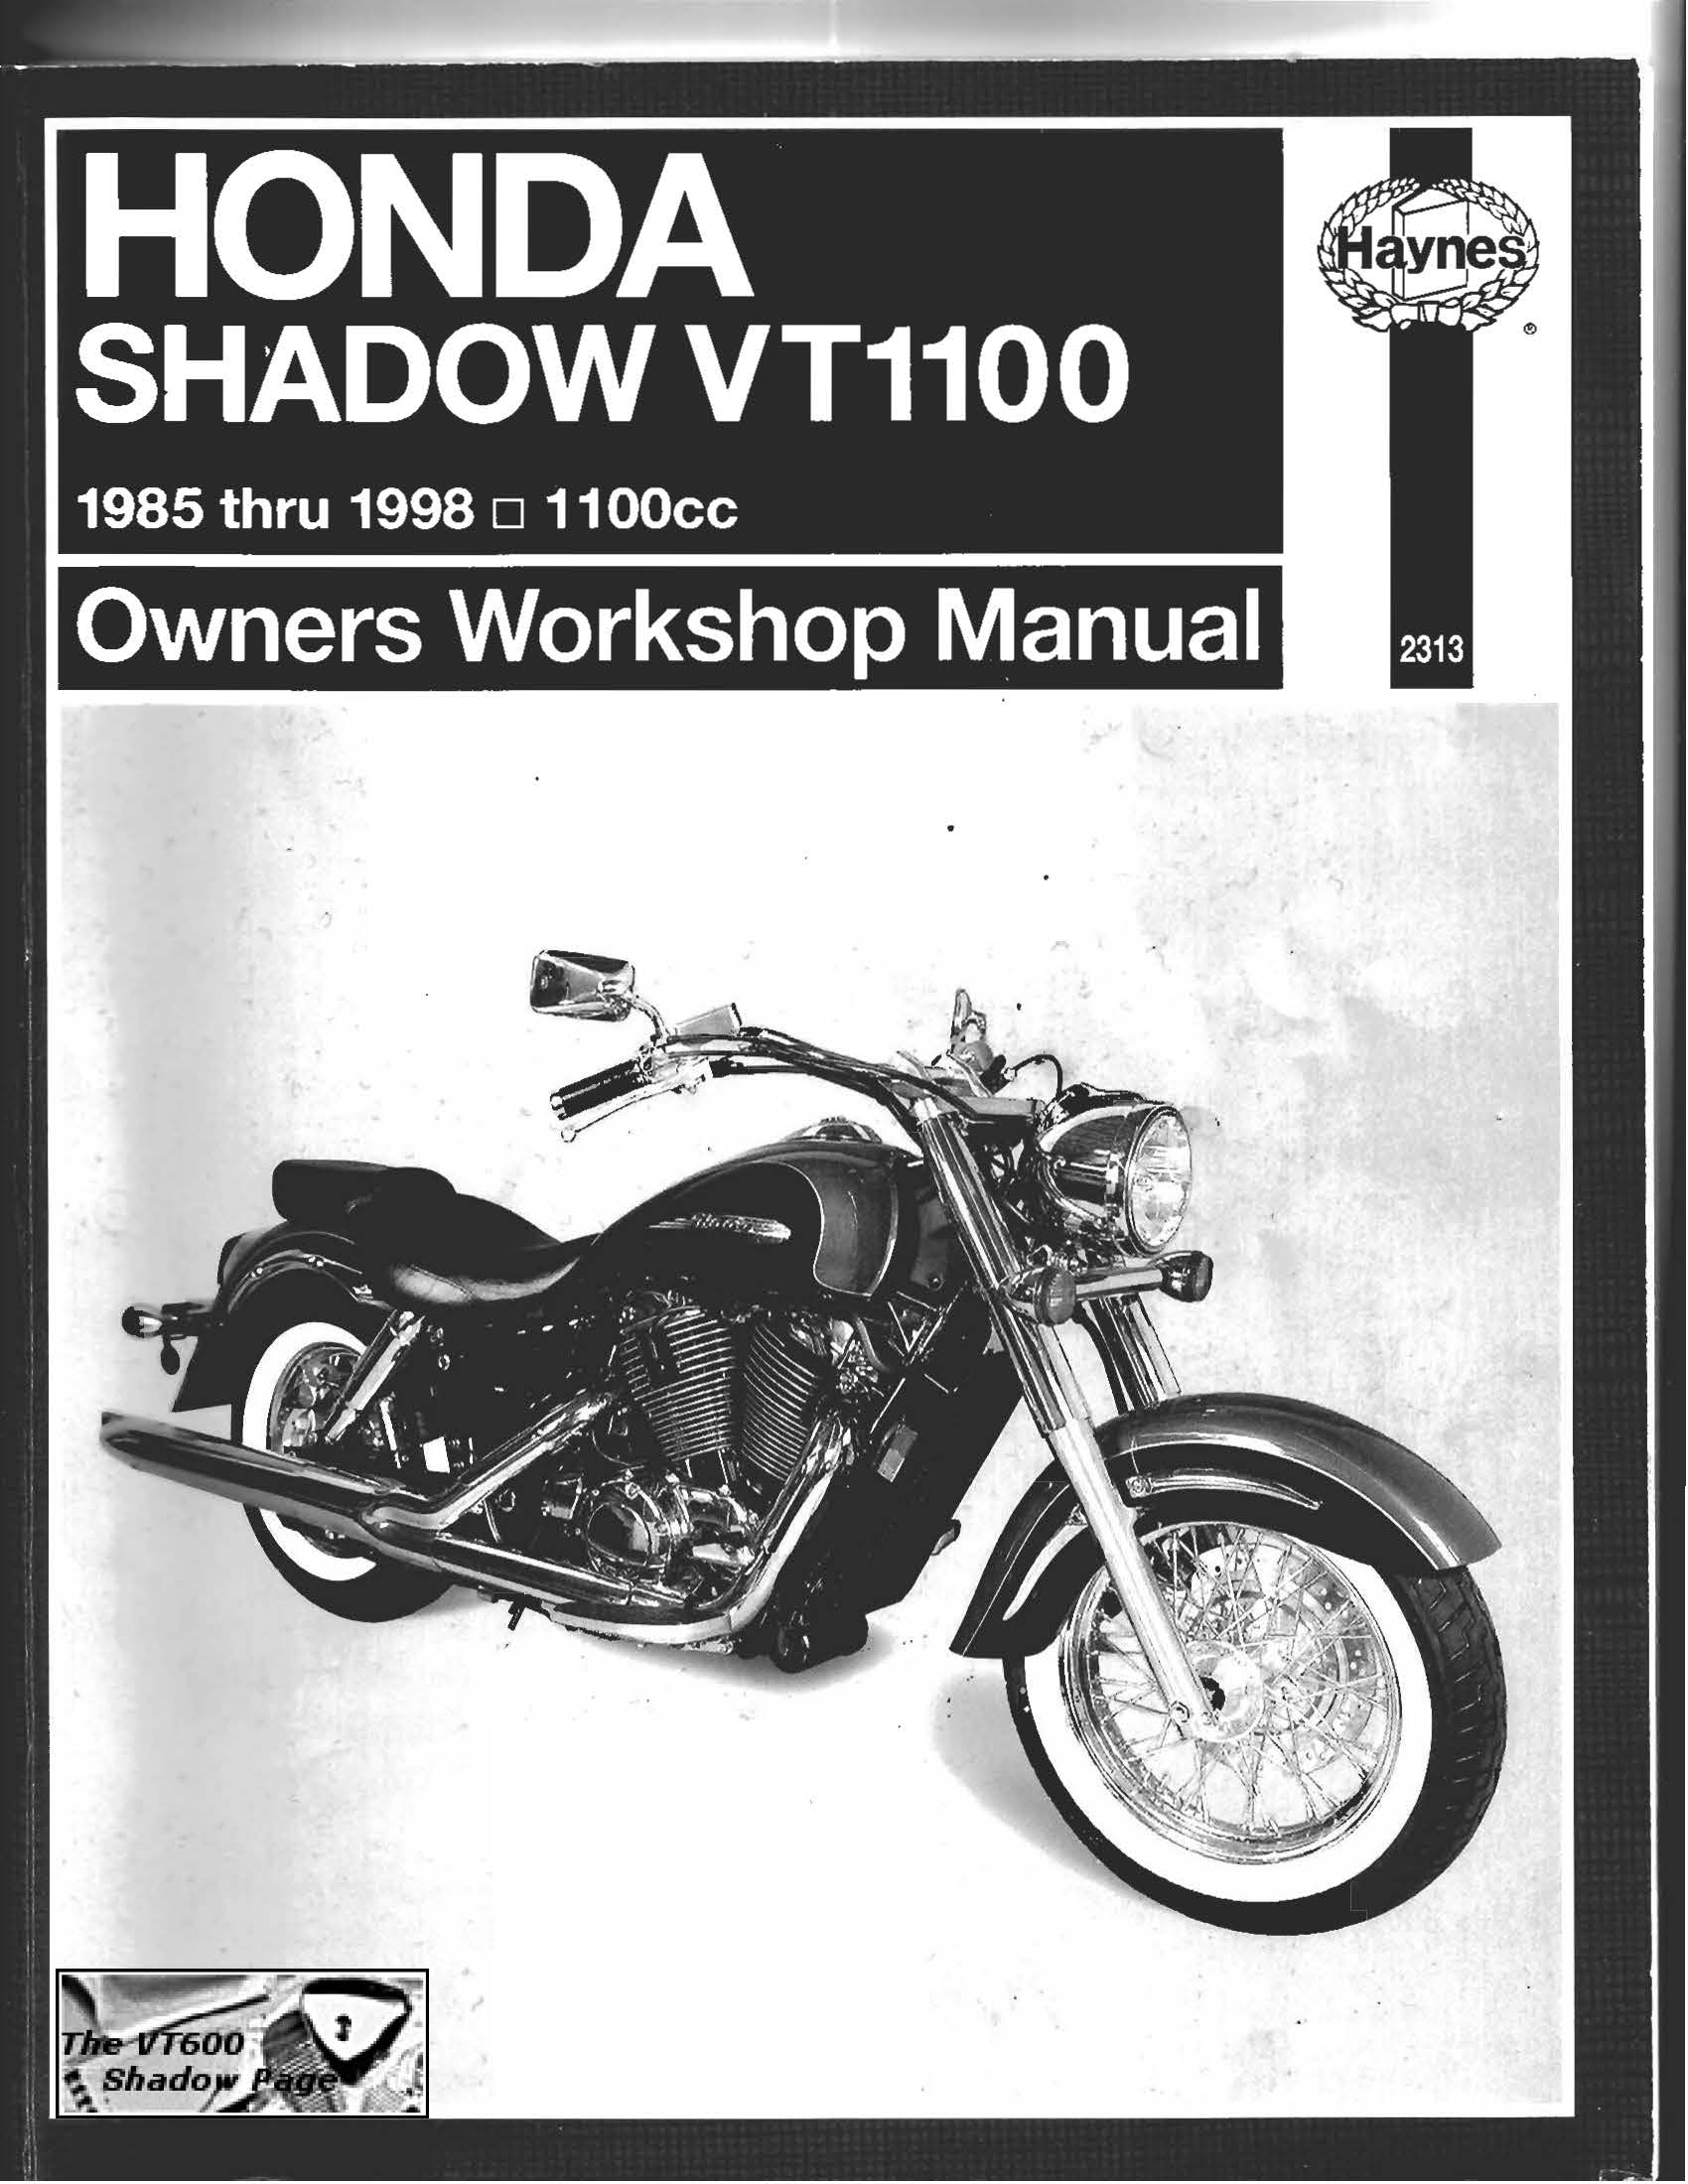 Workshop Manual for Honda VT1000 (1985-1998)